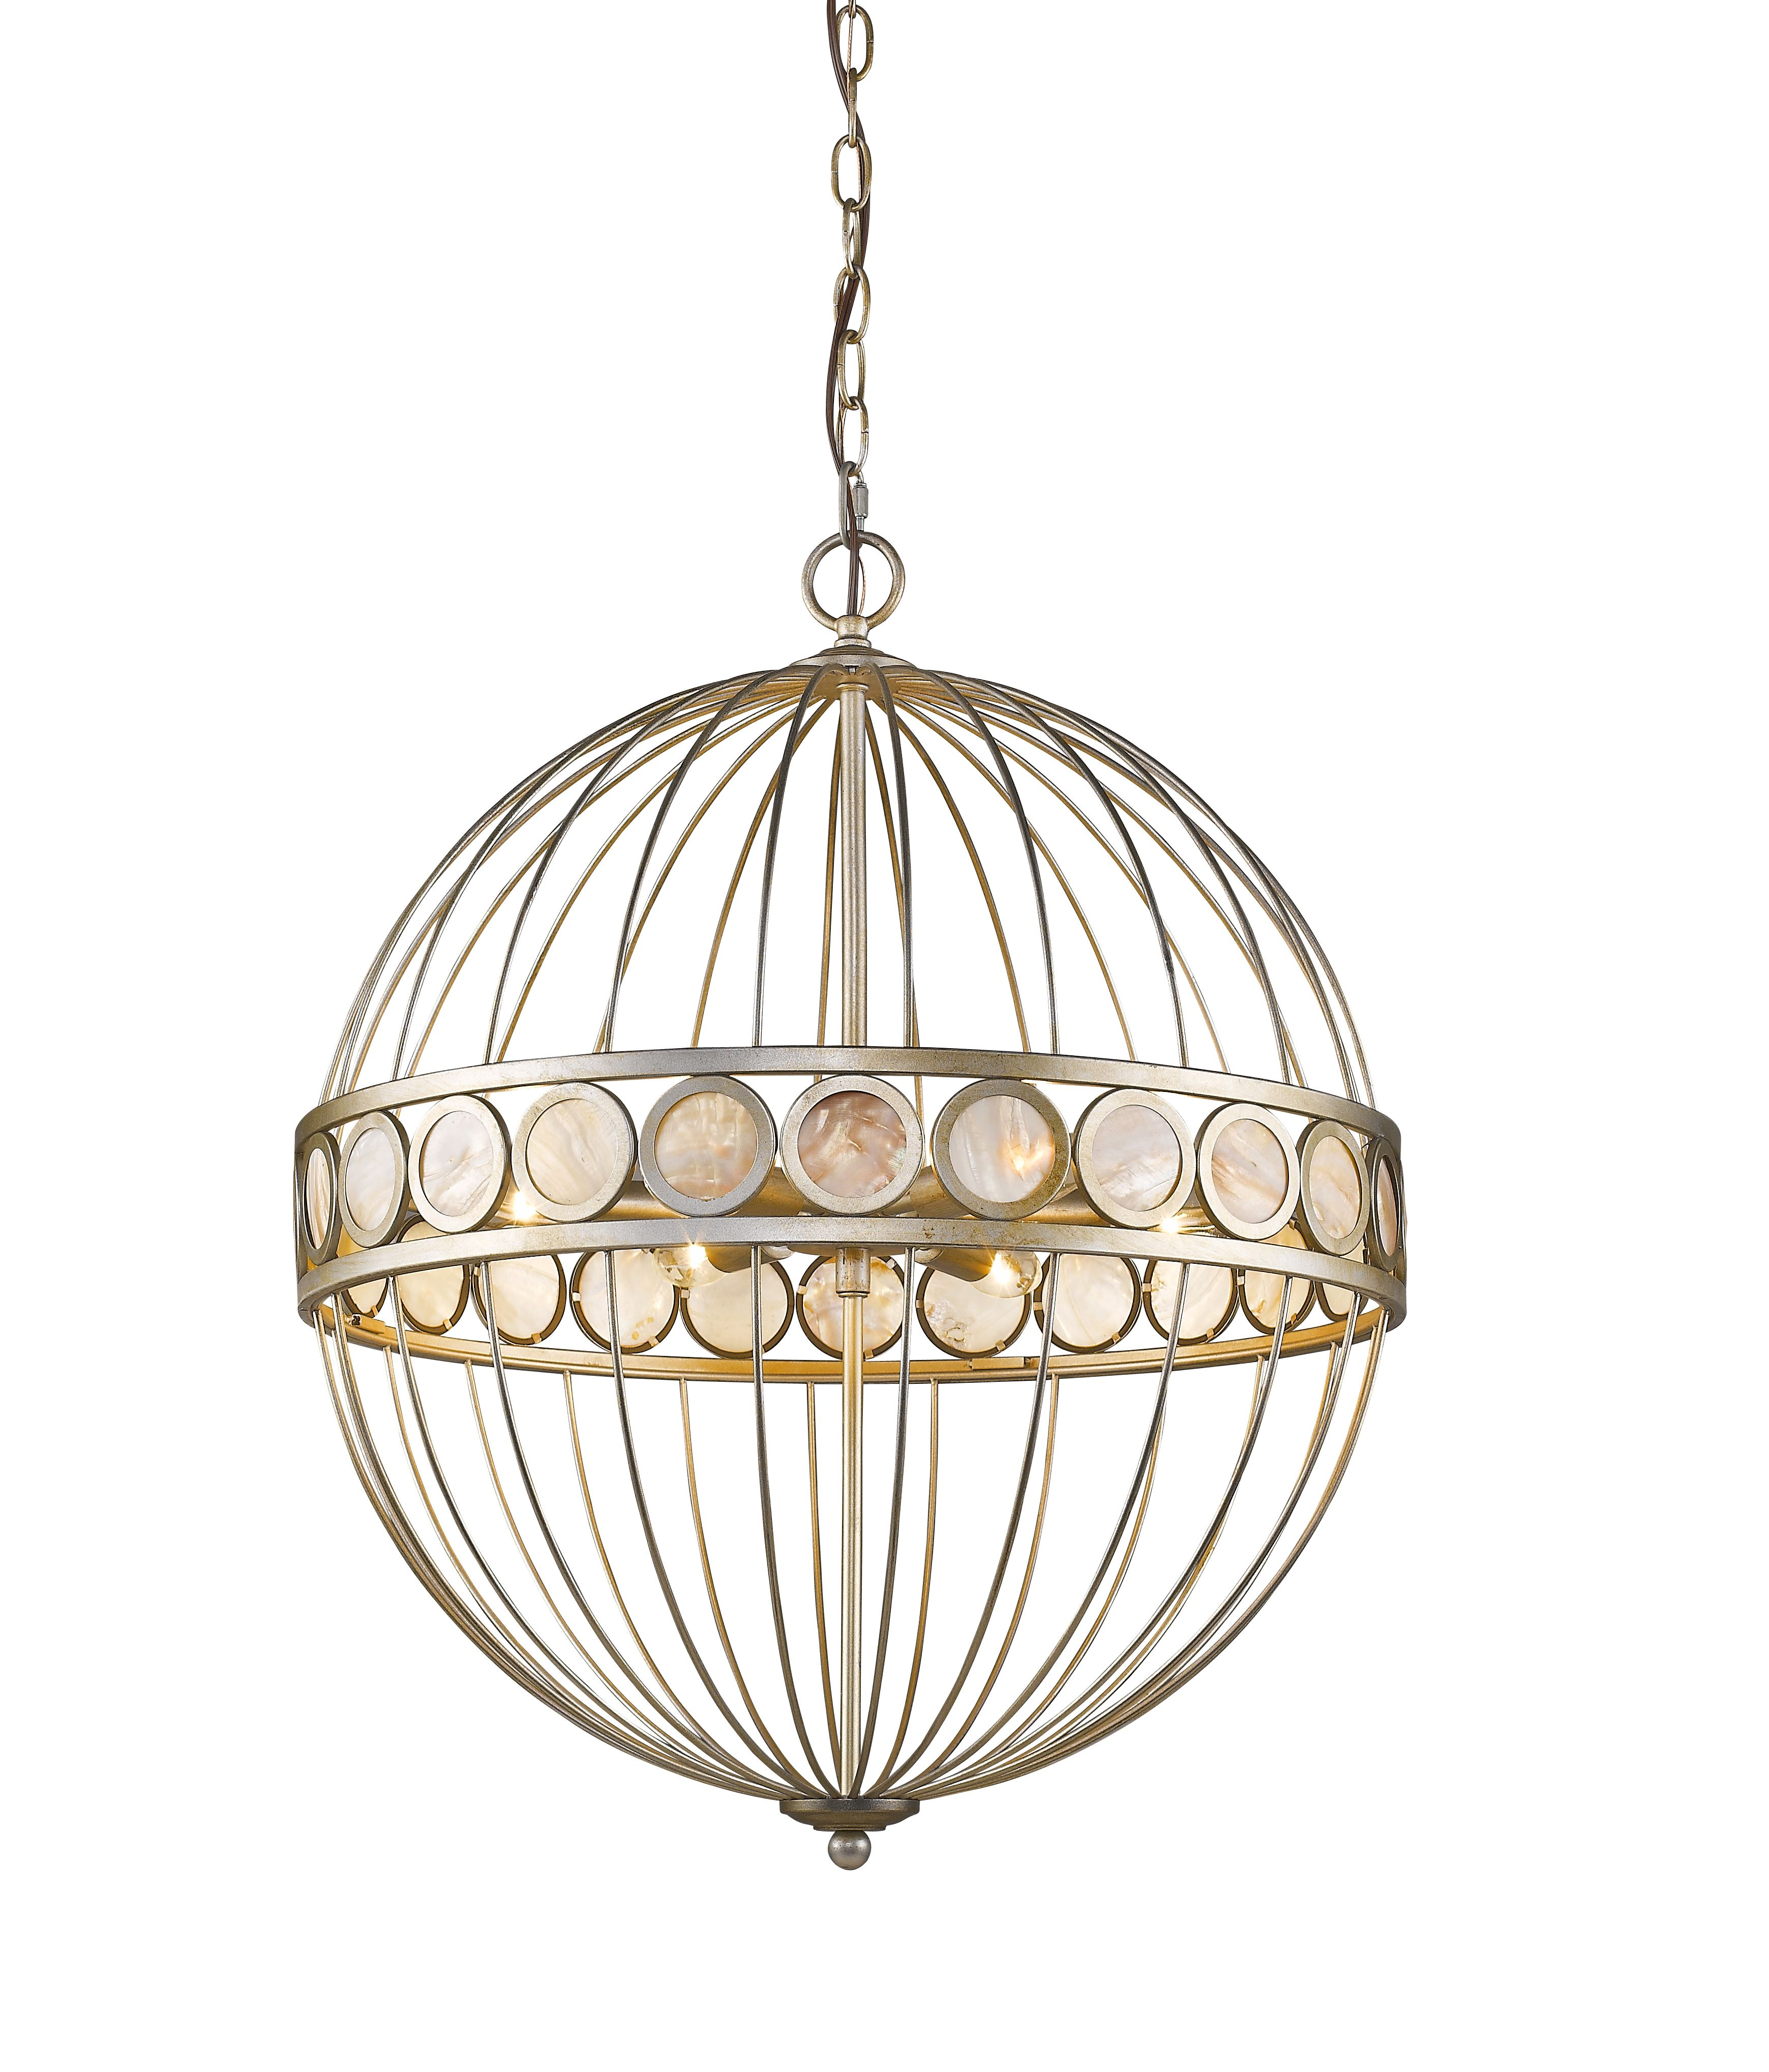 mother of pearl chandelier. Aria 6-light Chandelier In Antique Silver With Mother Of Pearl Discs